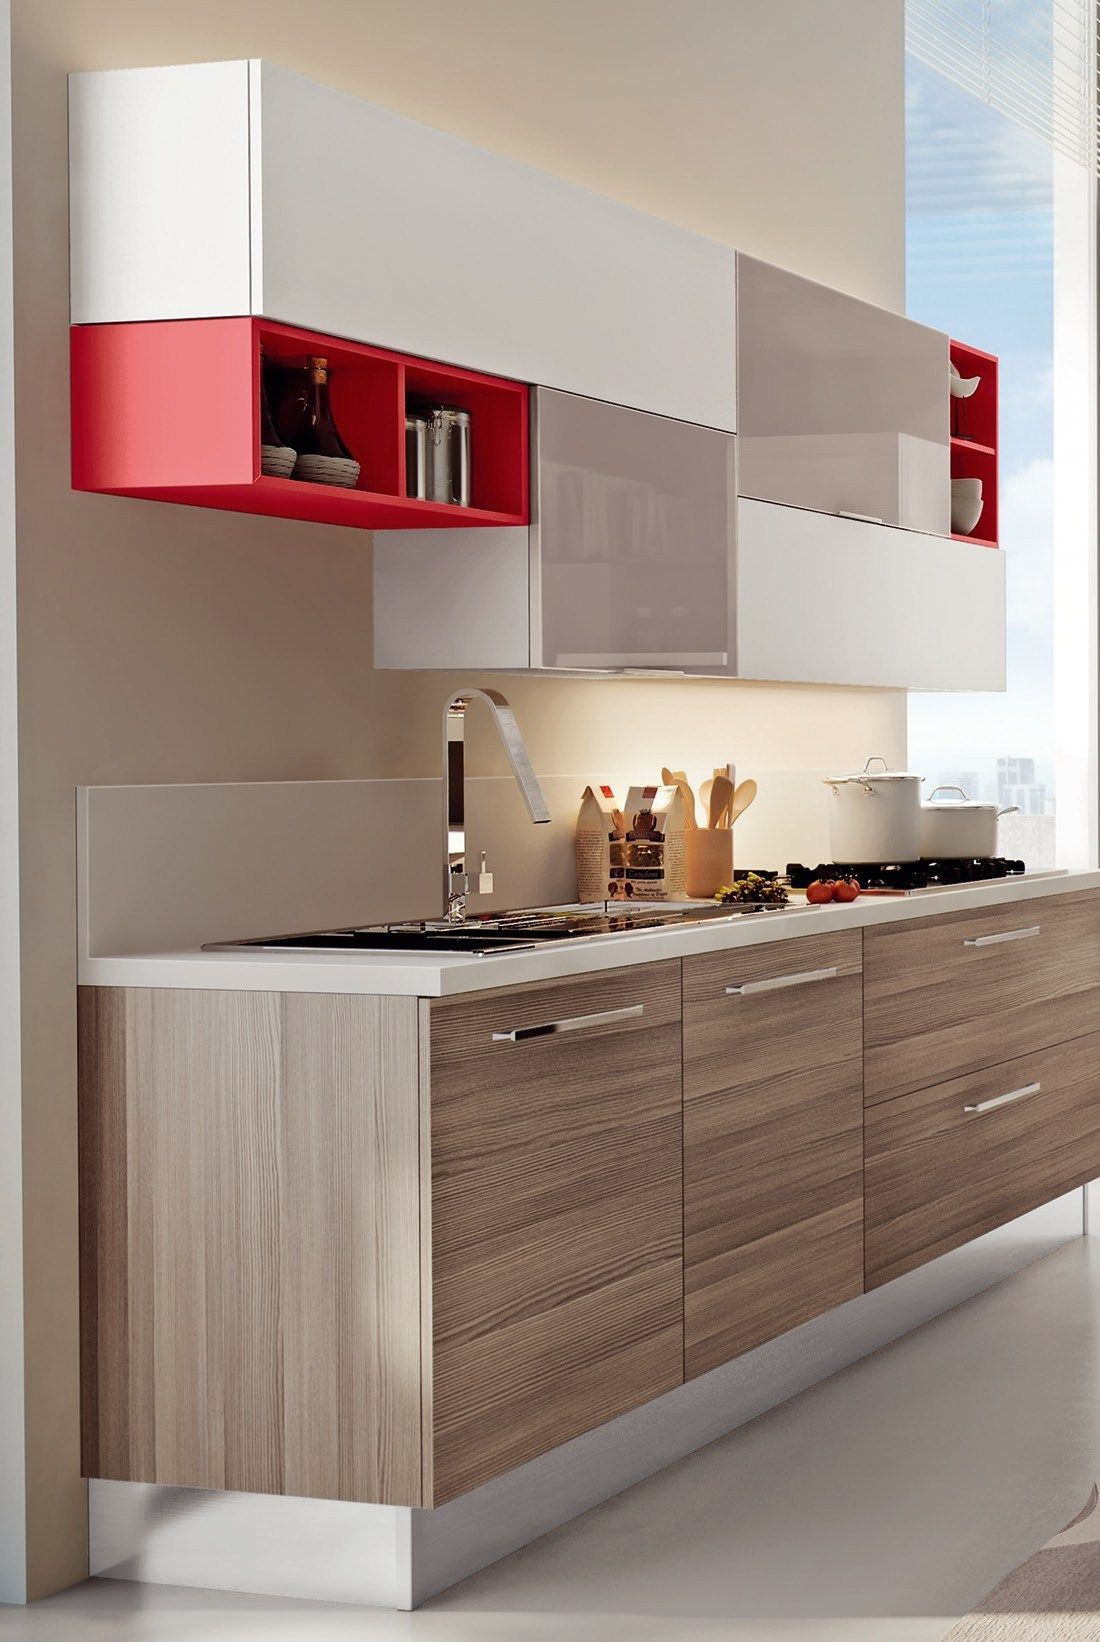 Lacquered Fitted Kitchen Swing Collection By Lube Industries